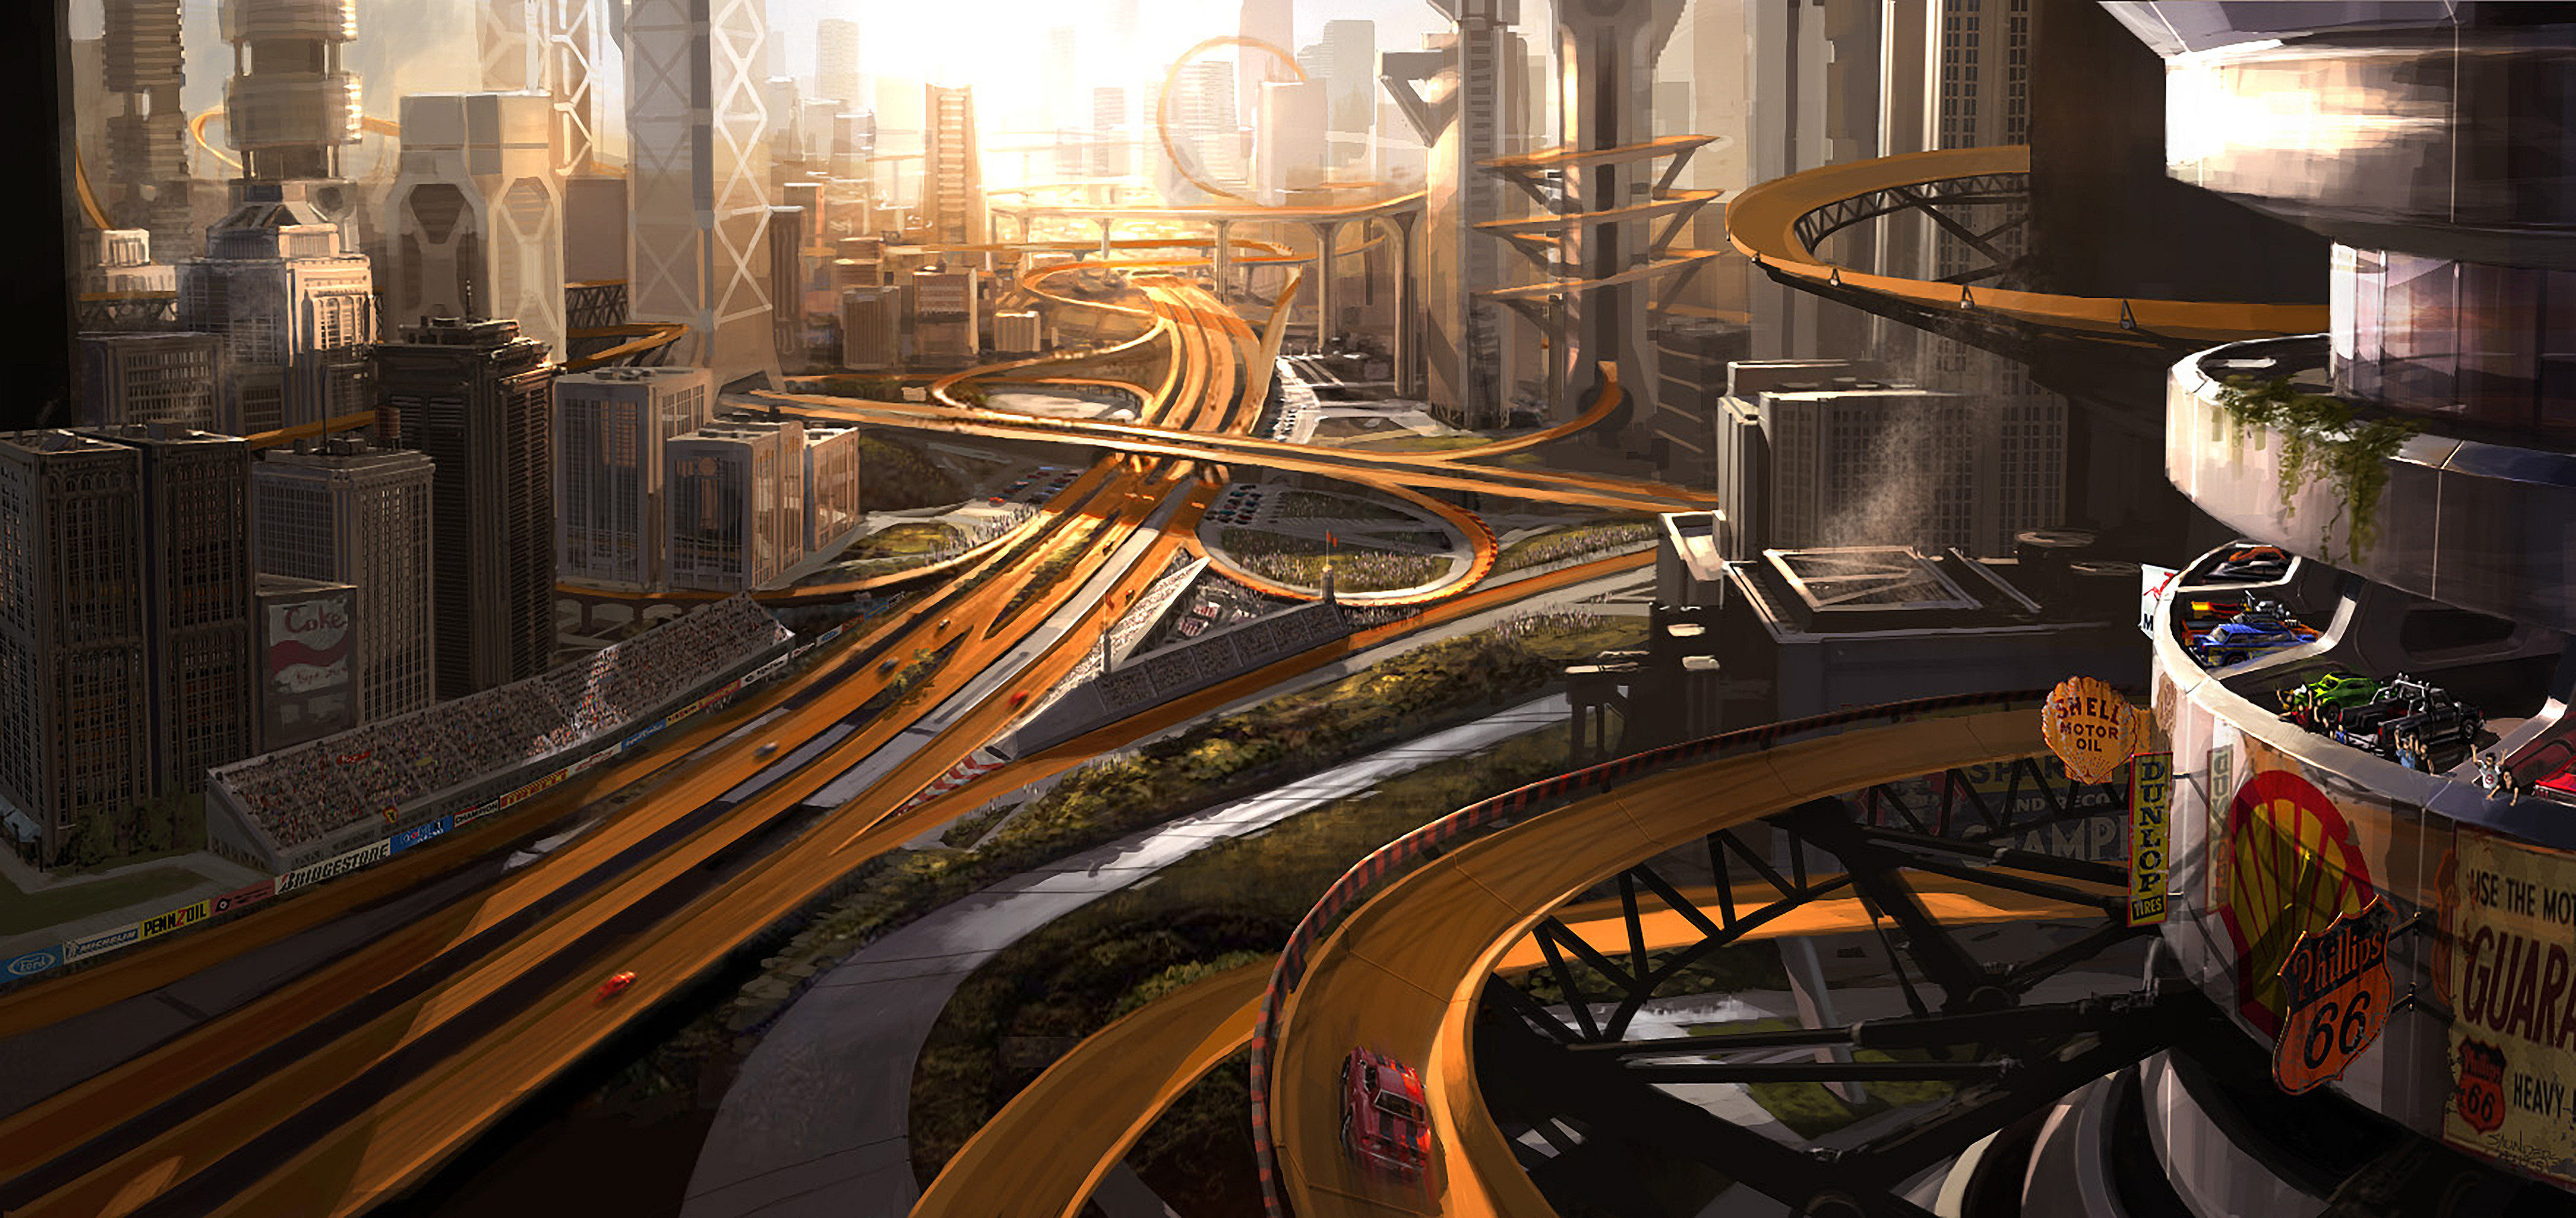 An overview of Motor City. This image was a test to see how the orange tracks would work in an urban setting.